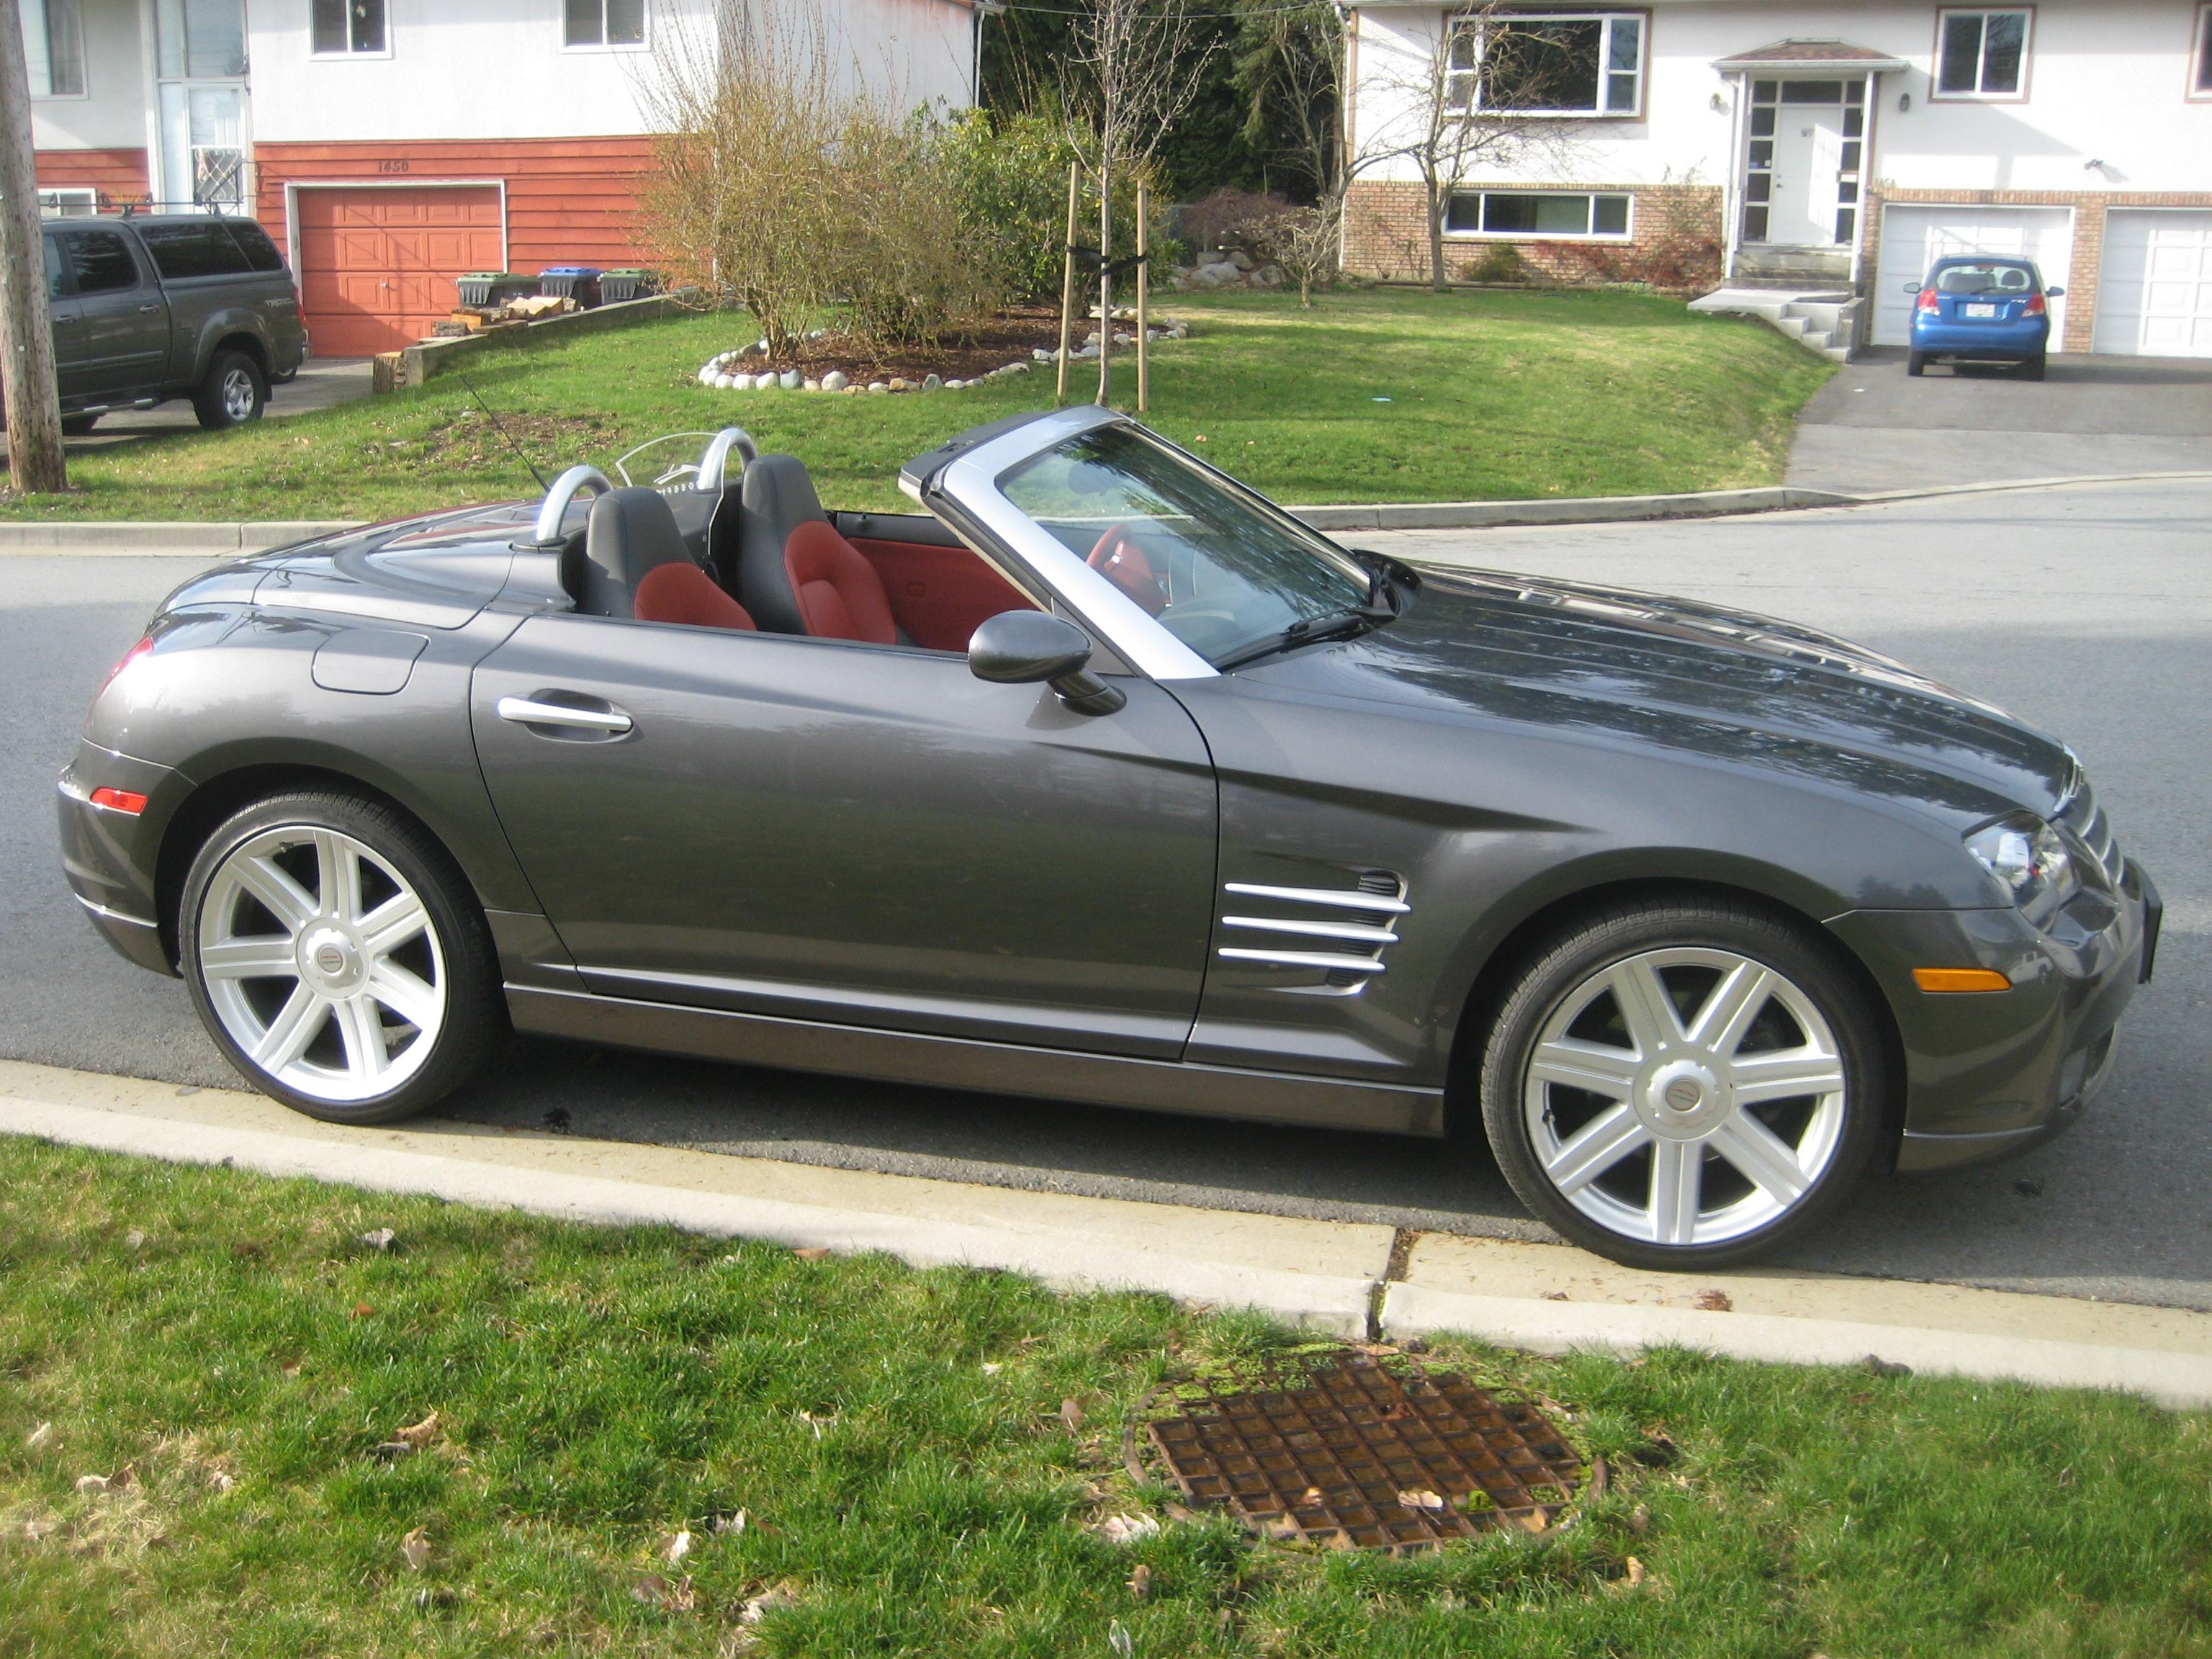 Reliableron's 2005 Chrysler Crossfire